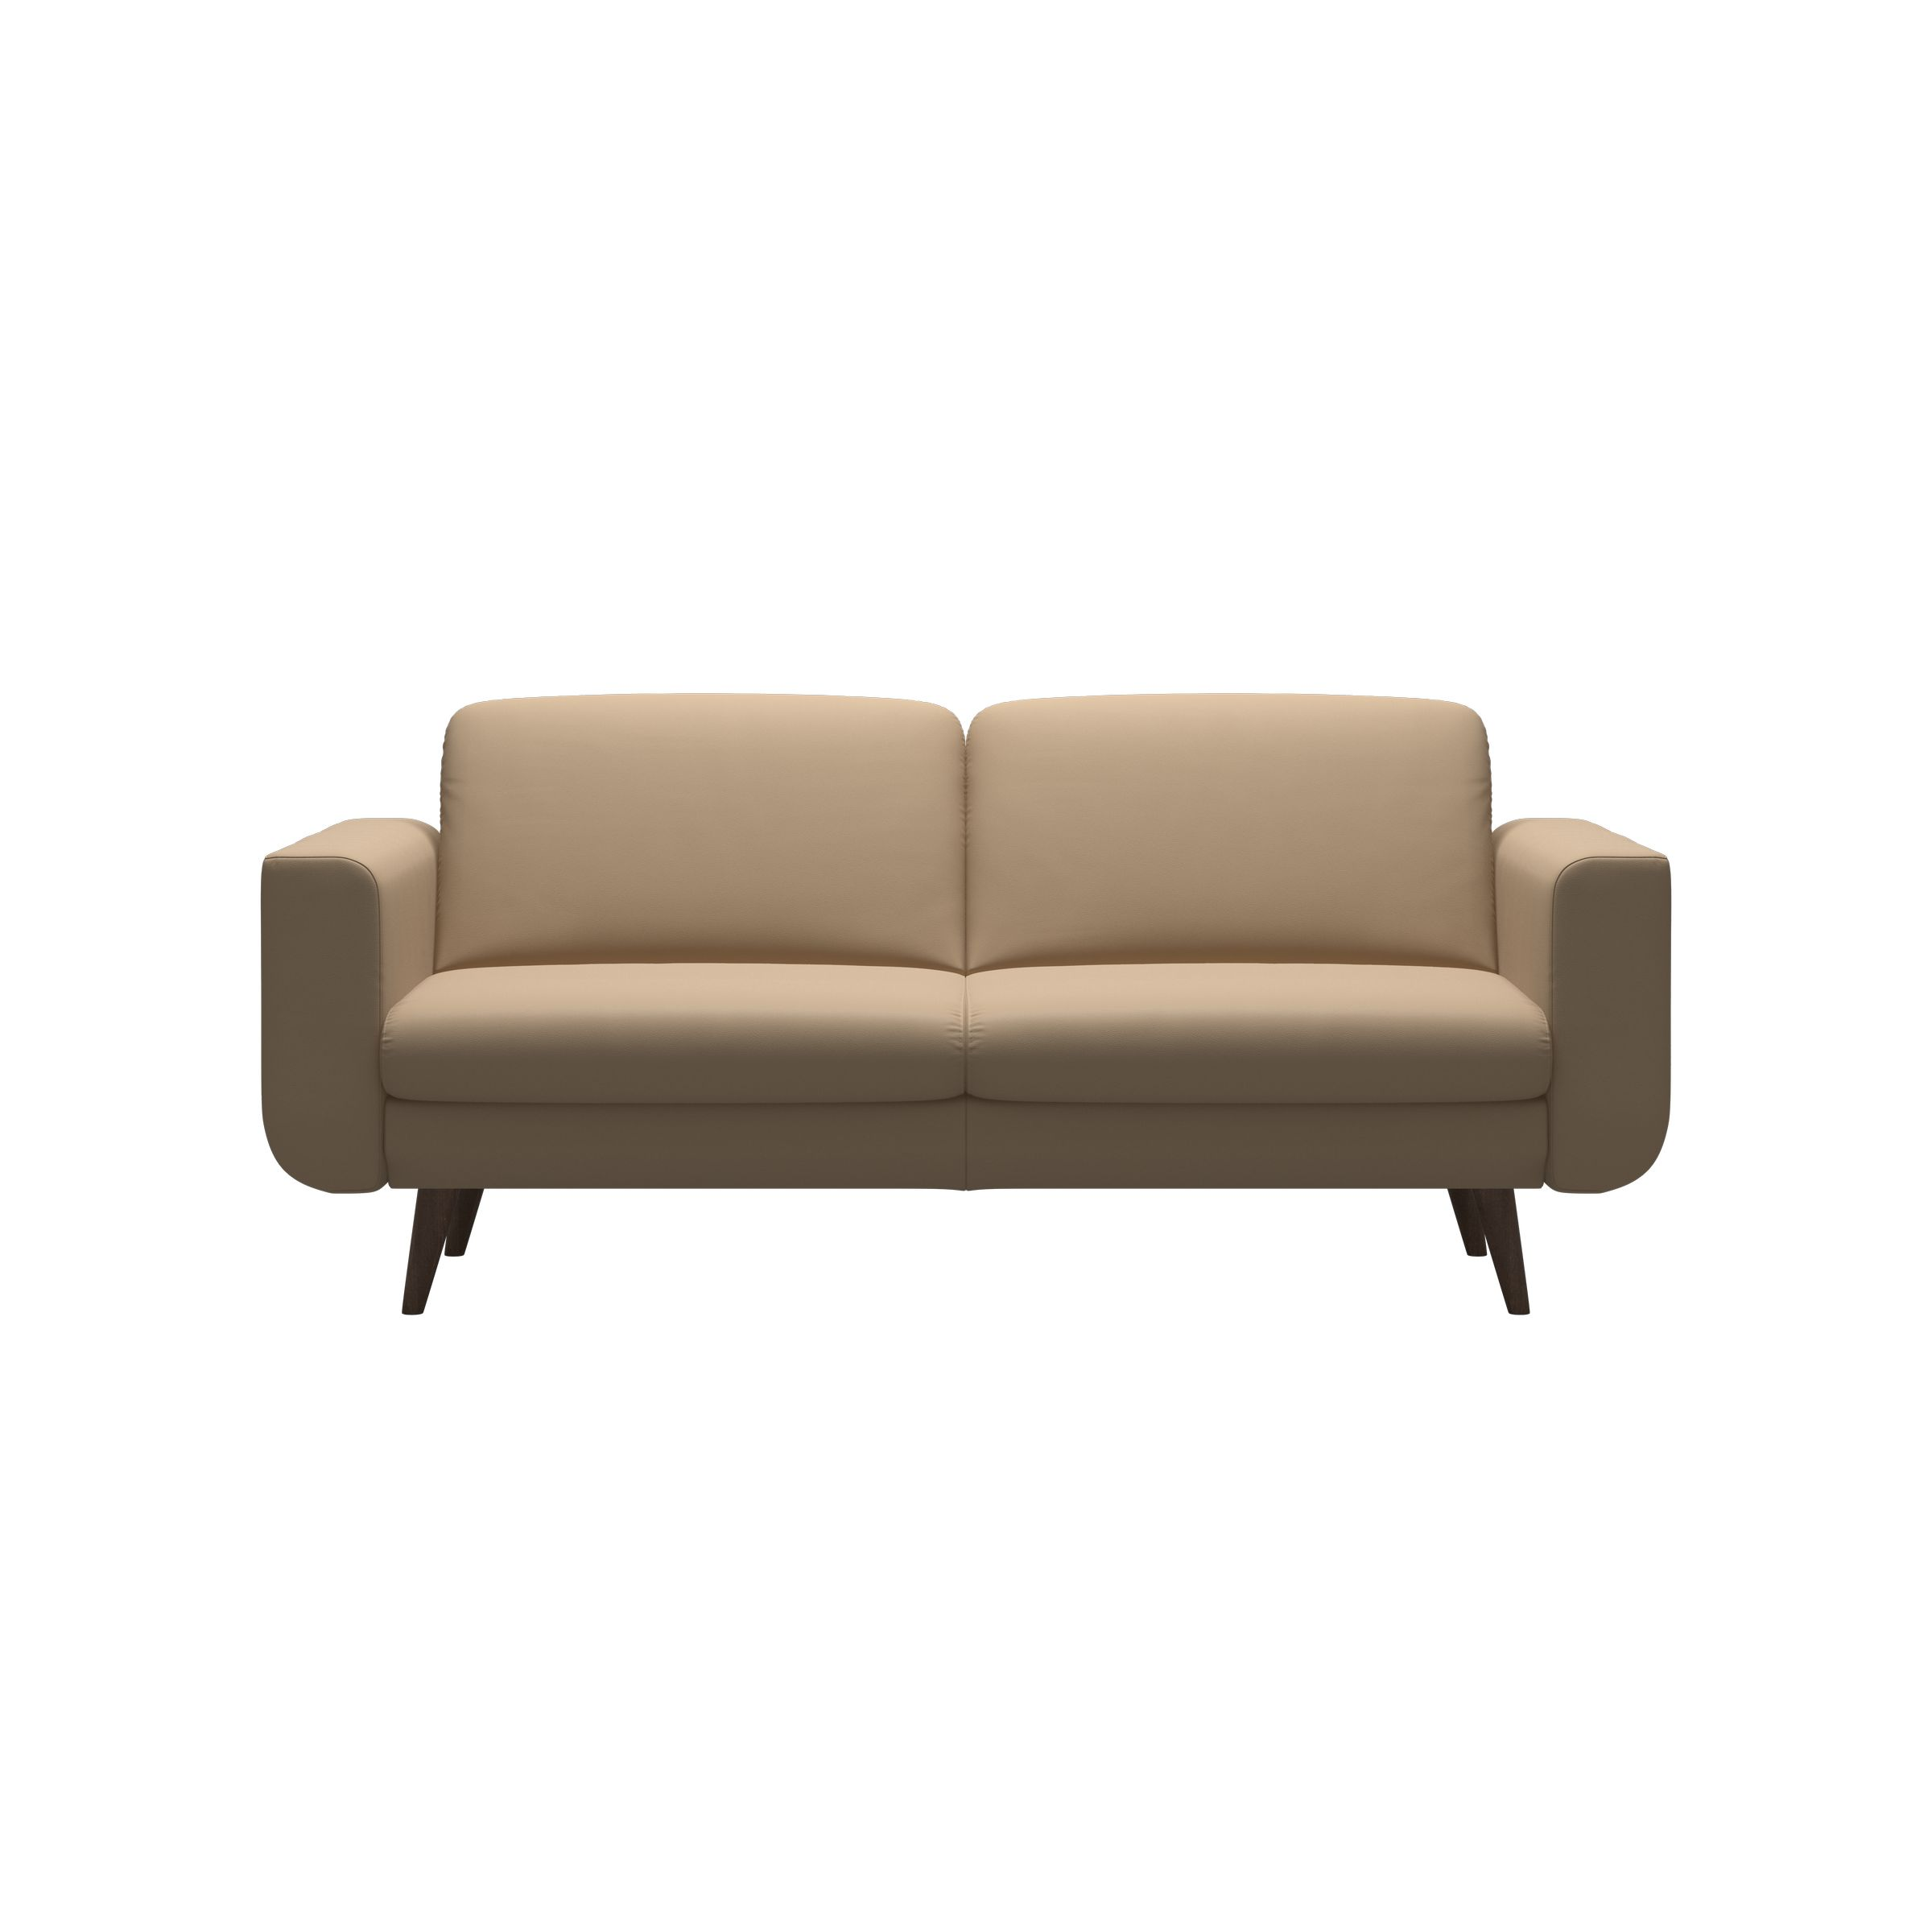 Stressless Sofa Dealers Stressless Joy Design Your Own Sofa Stressless